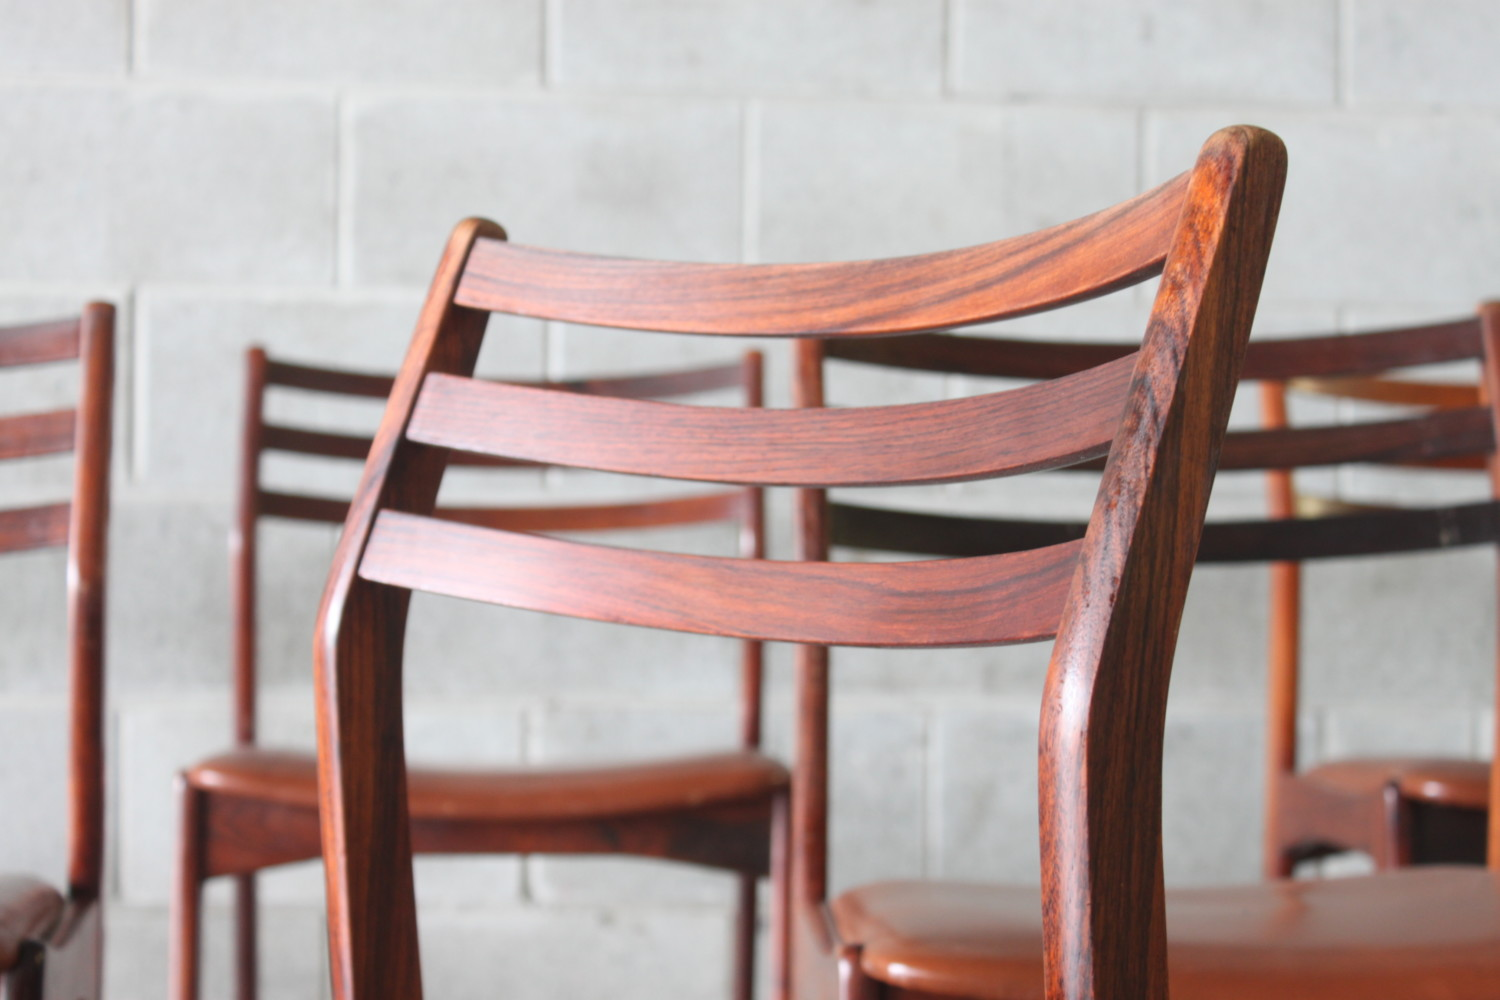 Rosewood Dining Chairs by Vestervig Eriksen